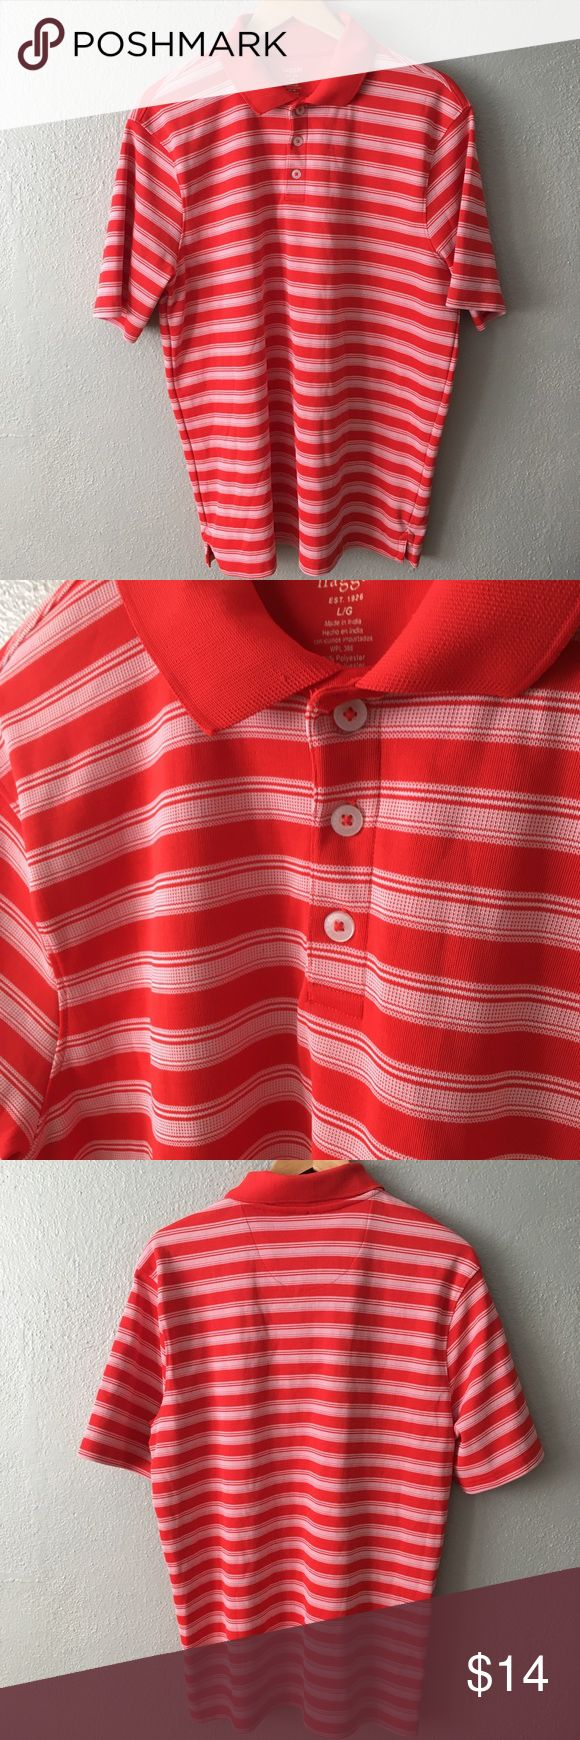 Haggar Lightweight Striped Sport Polo Golf Shirt Men's striped lightweight polo shirt in size large. Item is in good condition with no rips, stains, or holes! Please check out my other listings as I do offer a bundle discount, I love offers! Haggar Shirts Polos